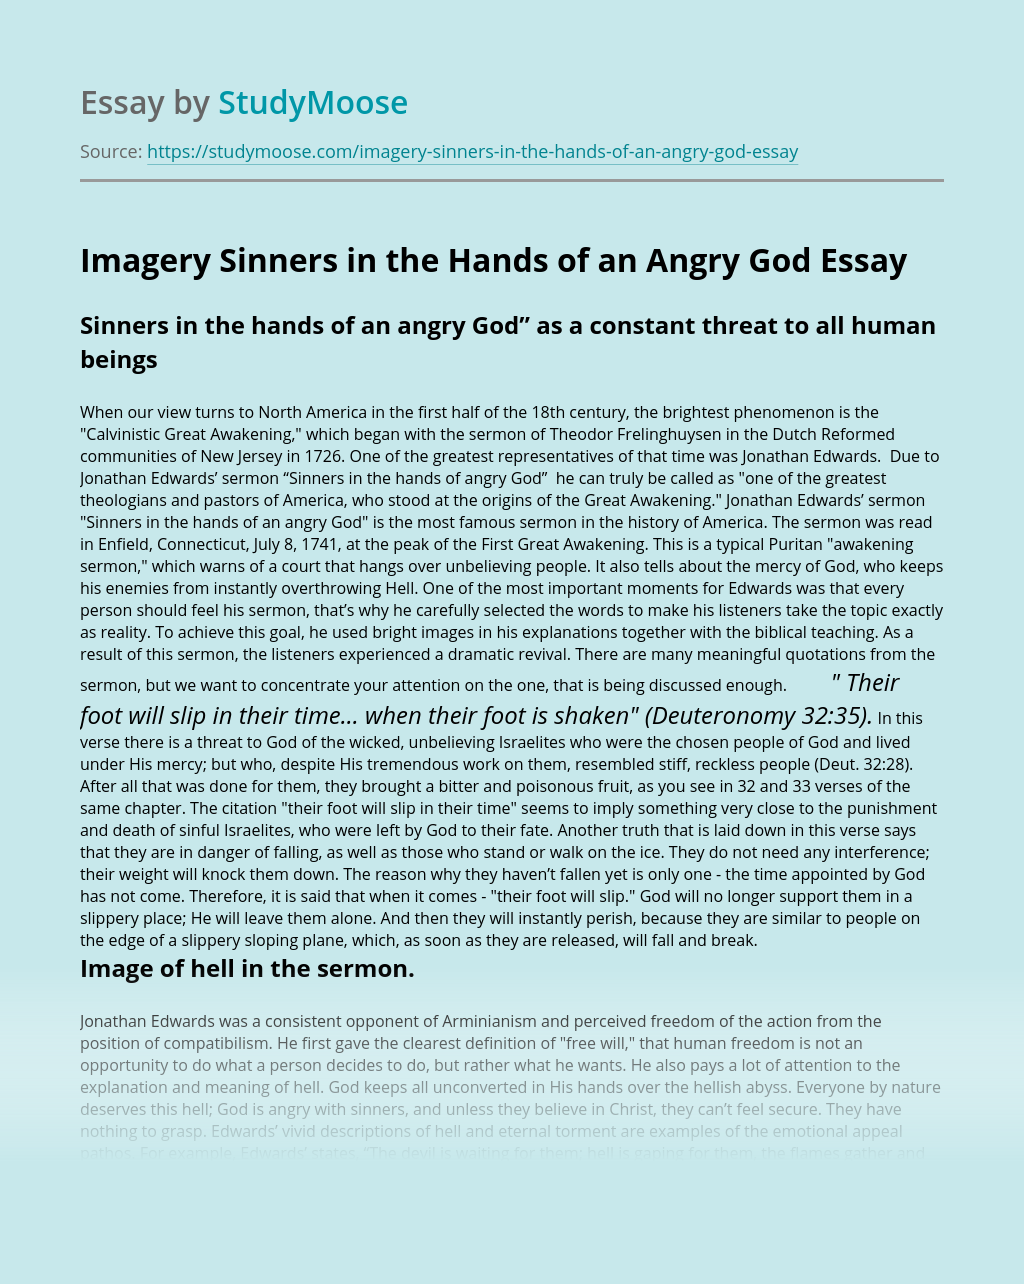 Imagery Sinners in the Hands of an Angry God